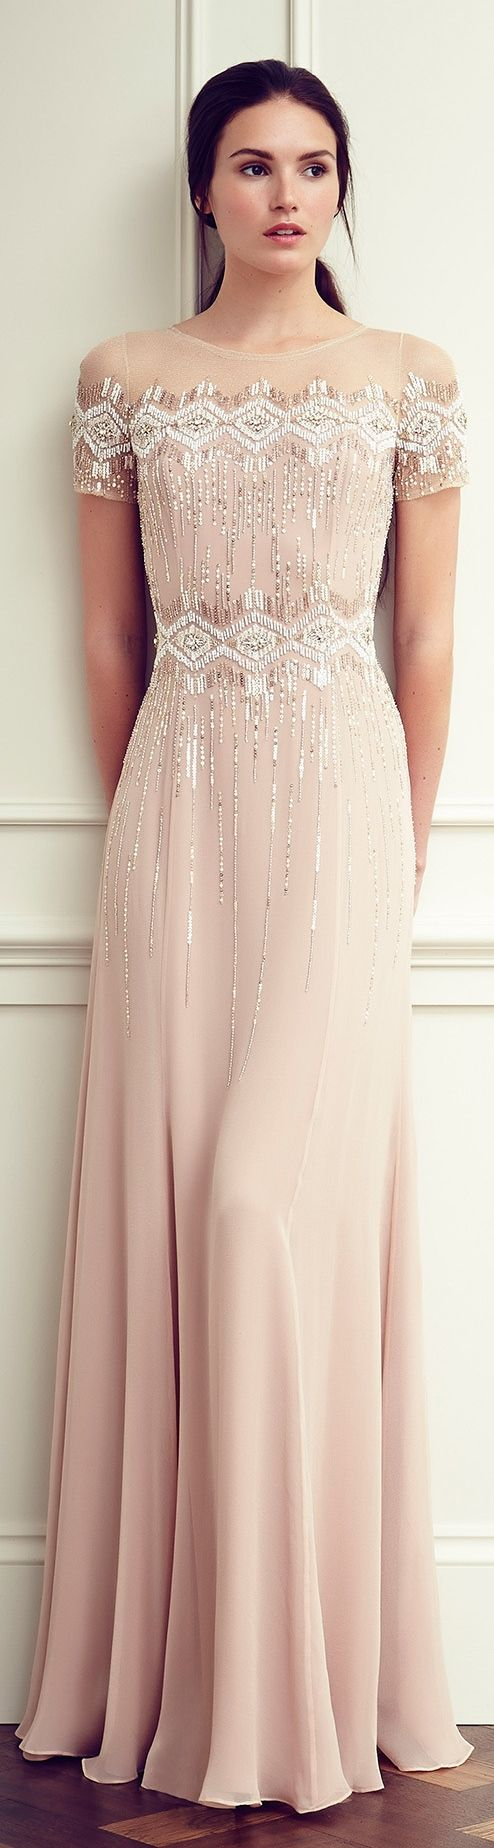 Jenny packham resort such a soft pink gorgeous prom dress or